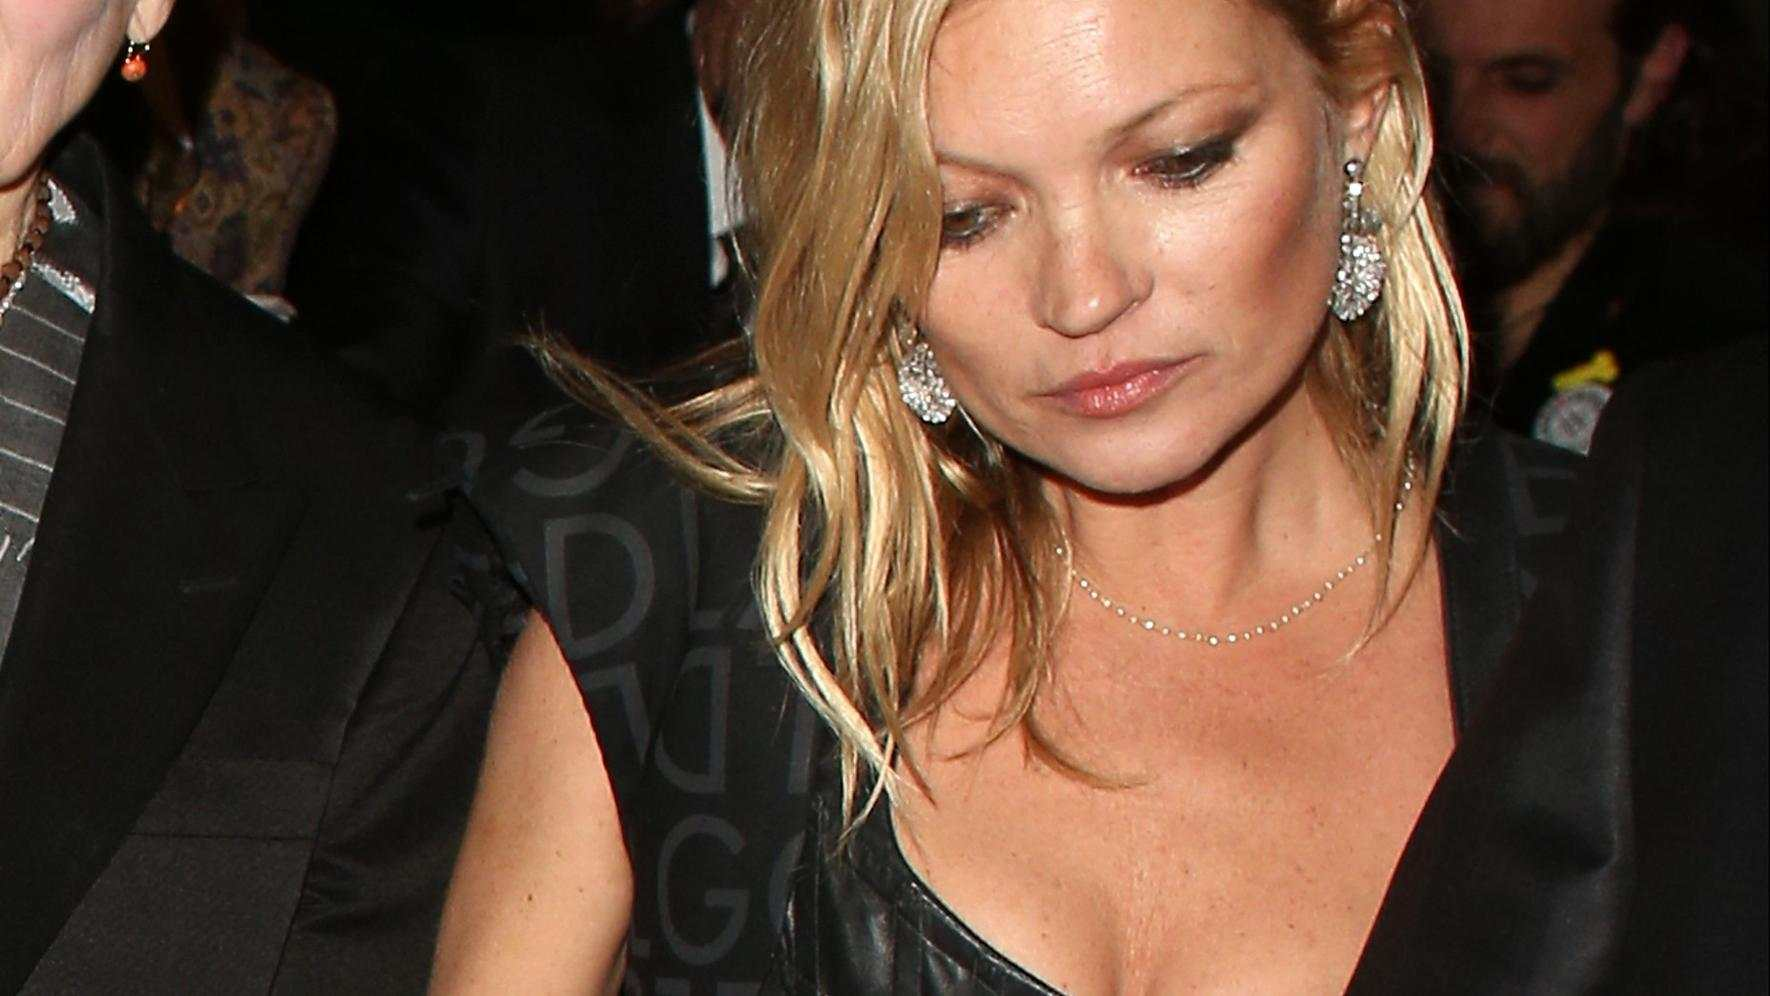 Kate Moss nach Easy Jet Party betrunken Vivienne Westwood